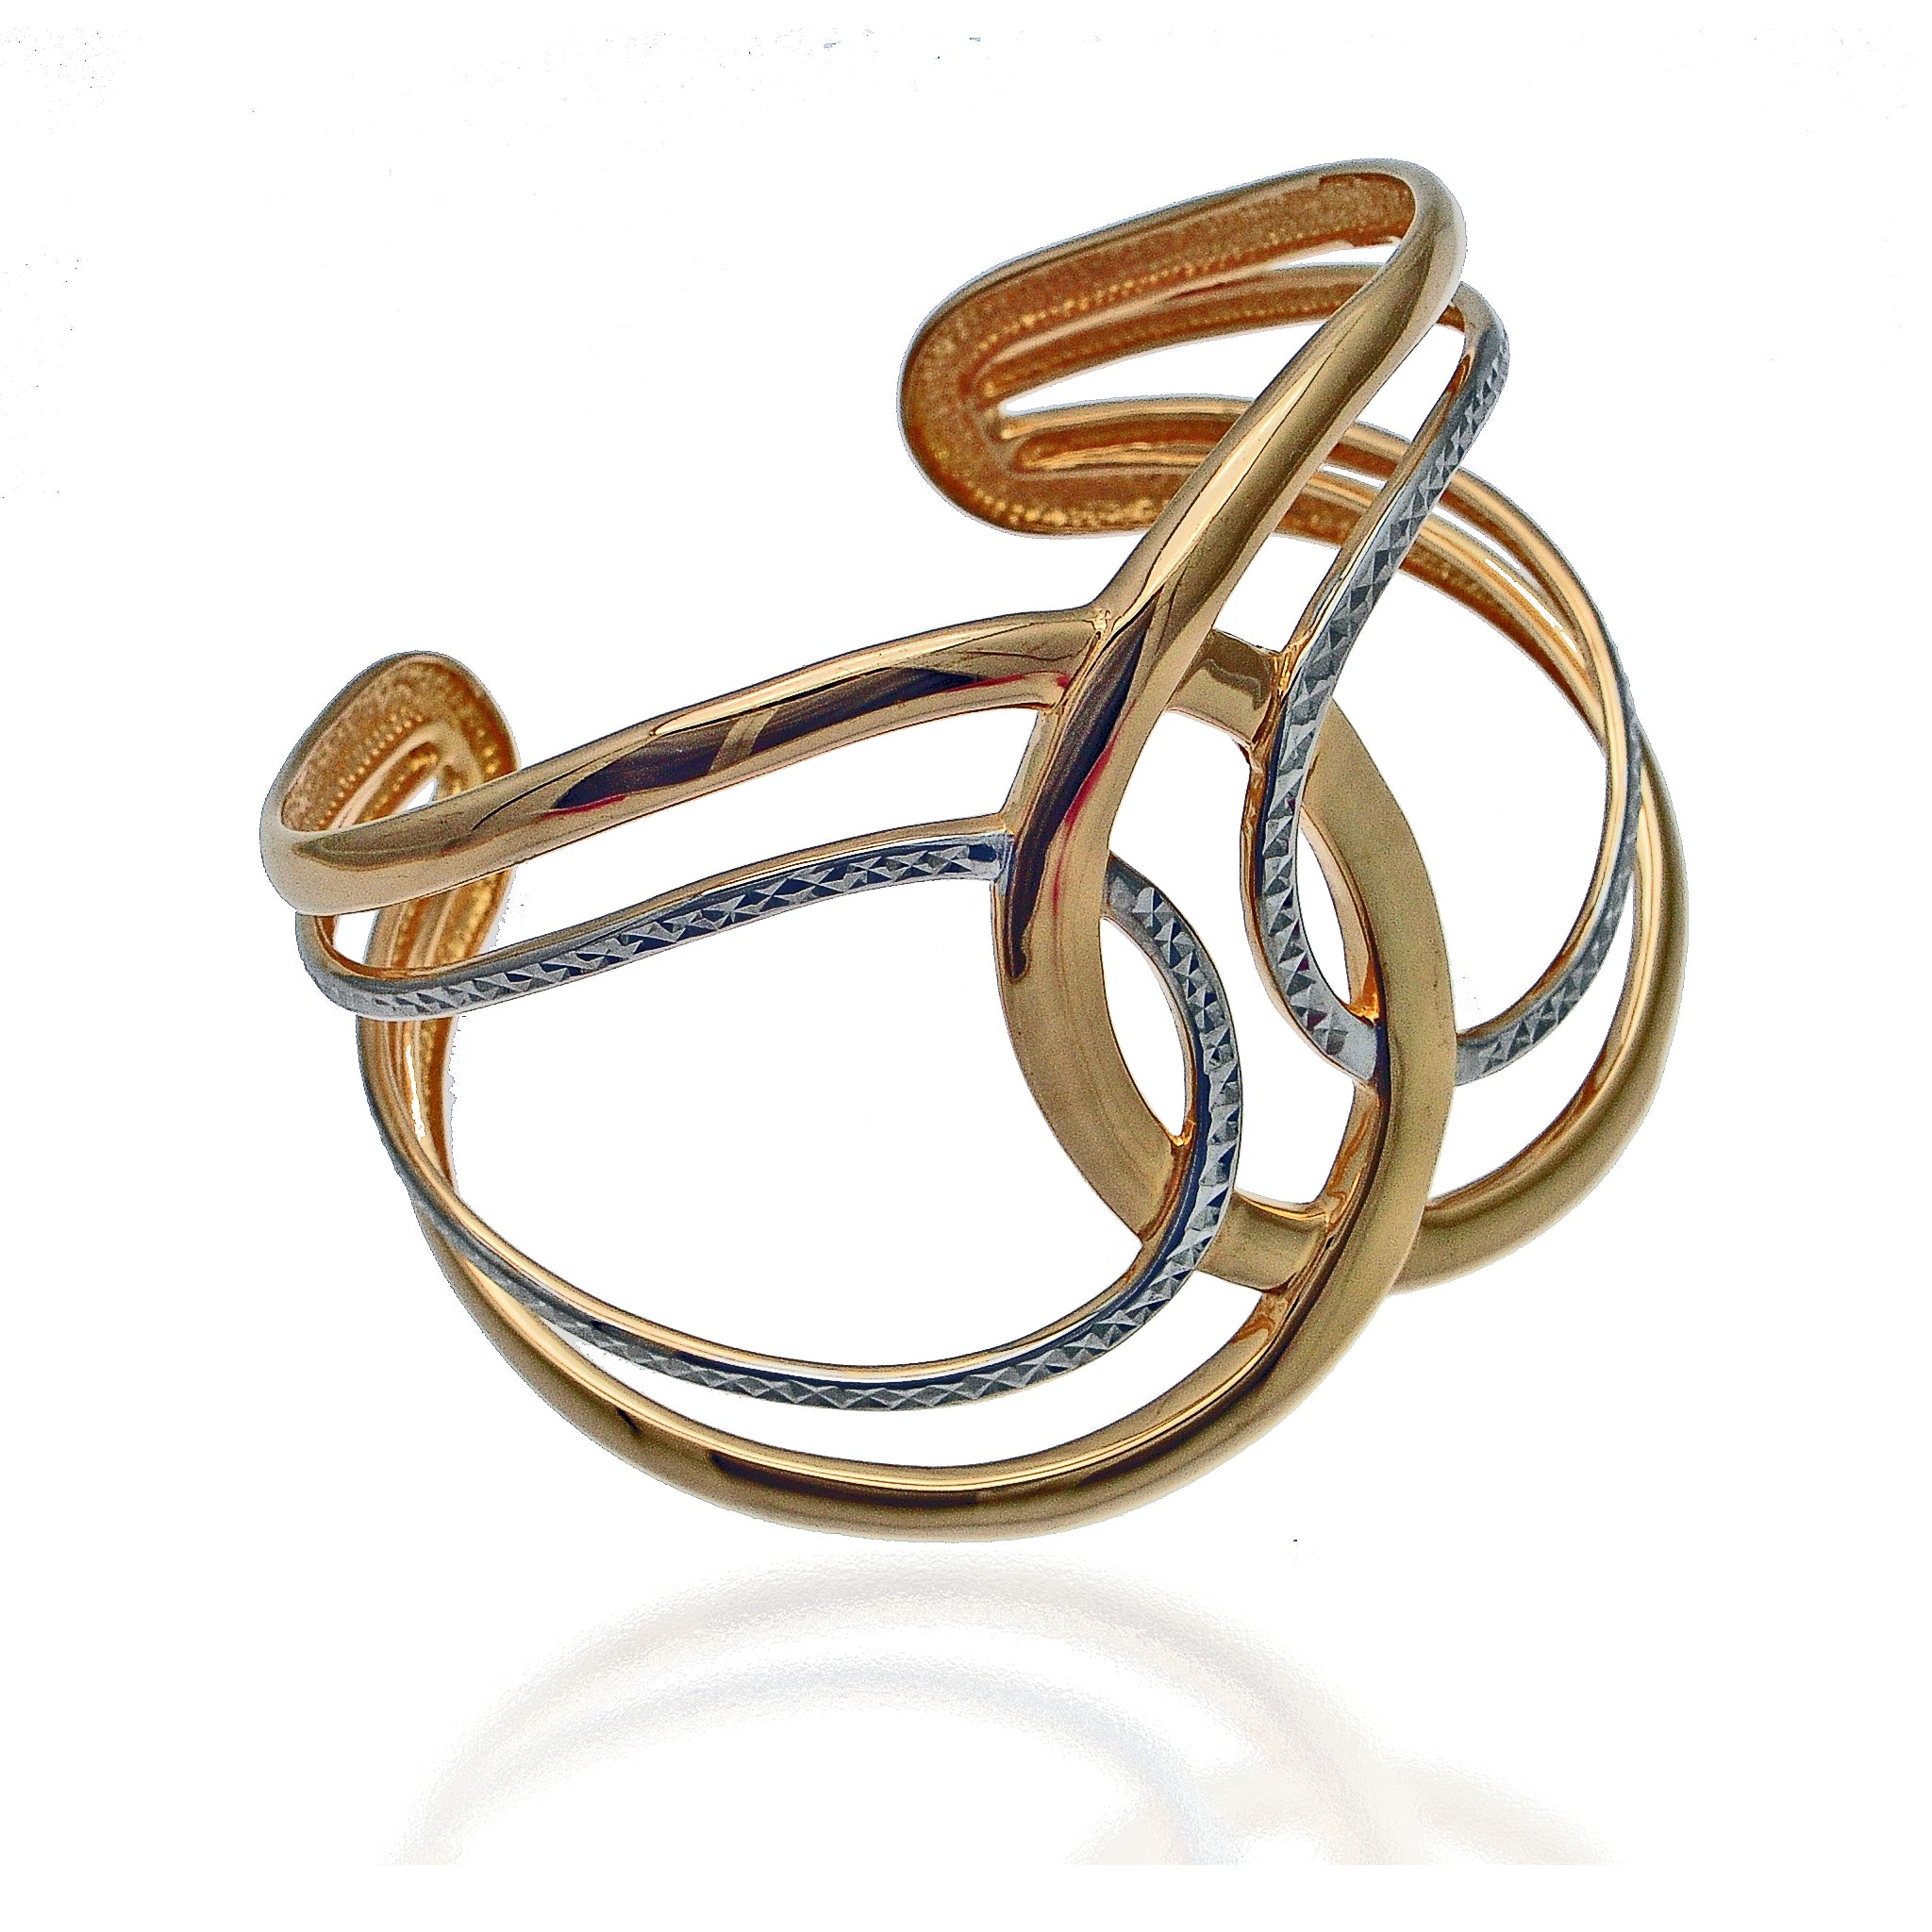 Silver and Gold Interlock Cuff Bracelet